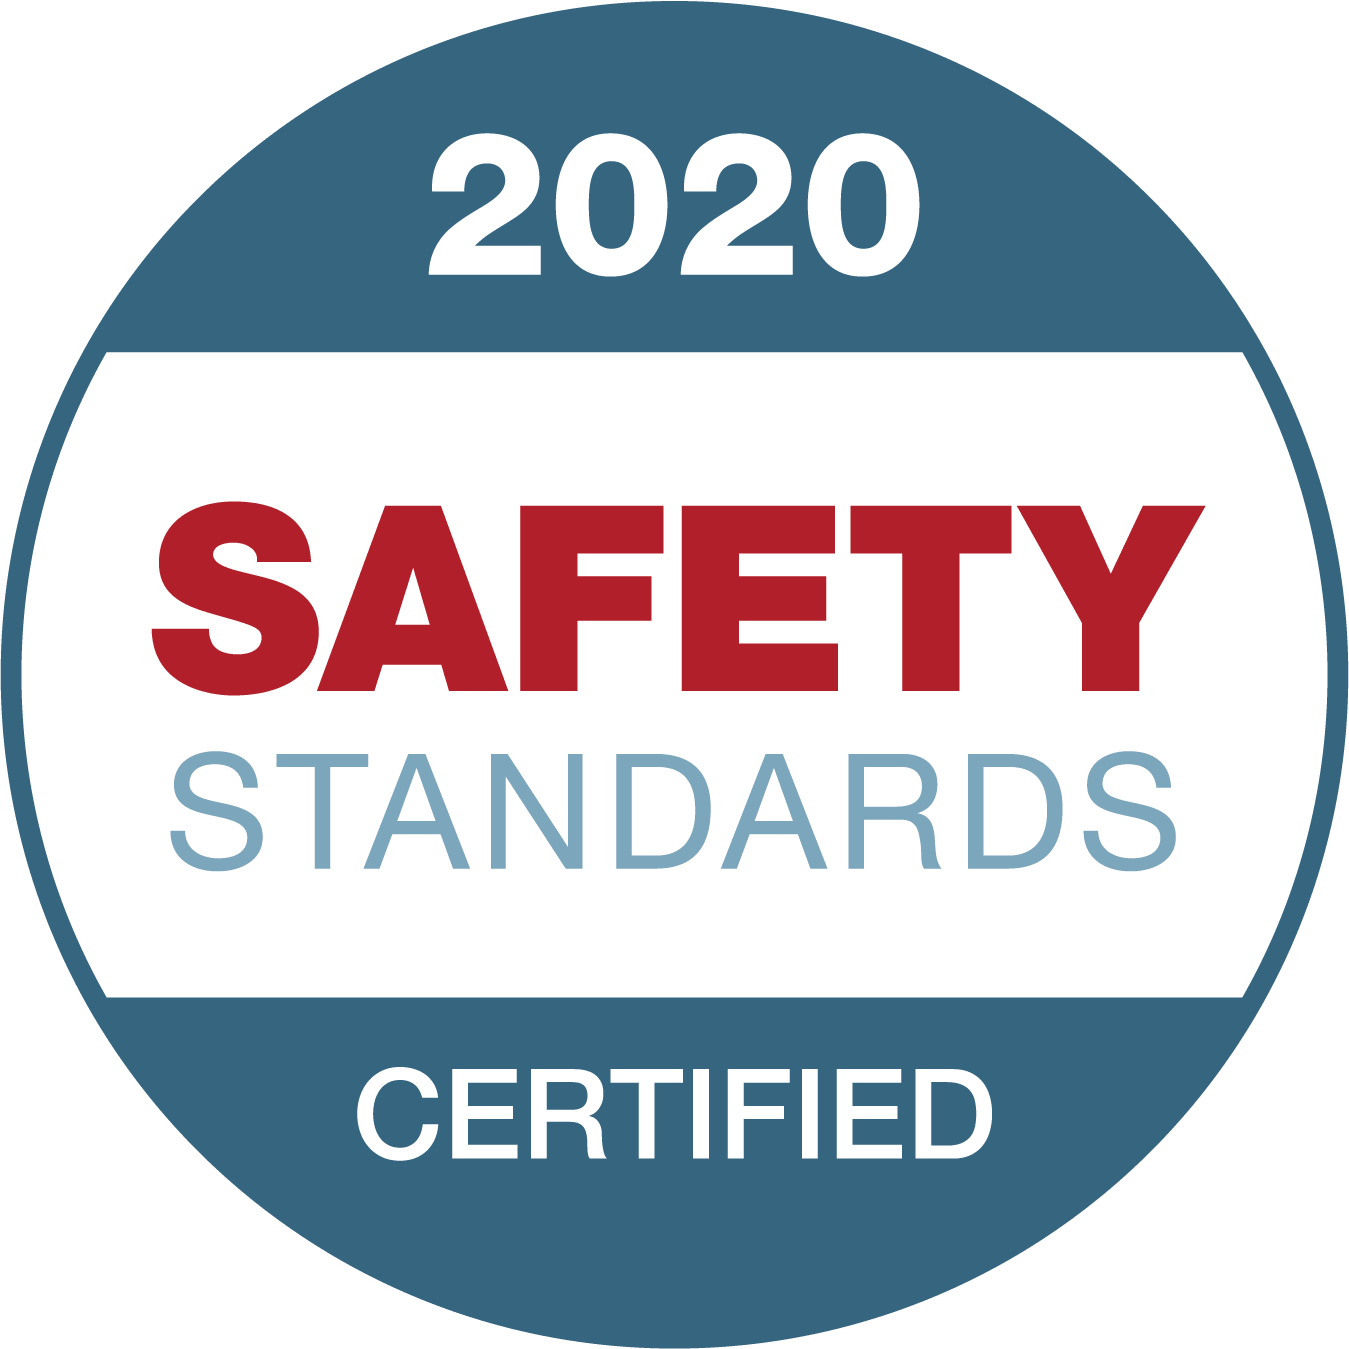 2020 safety standards certified